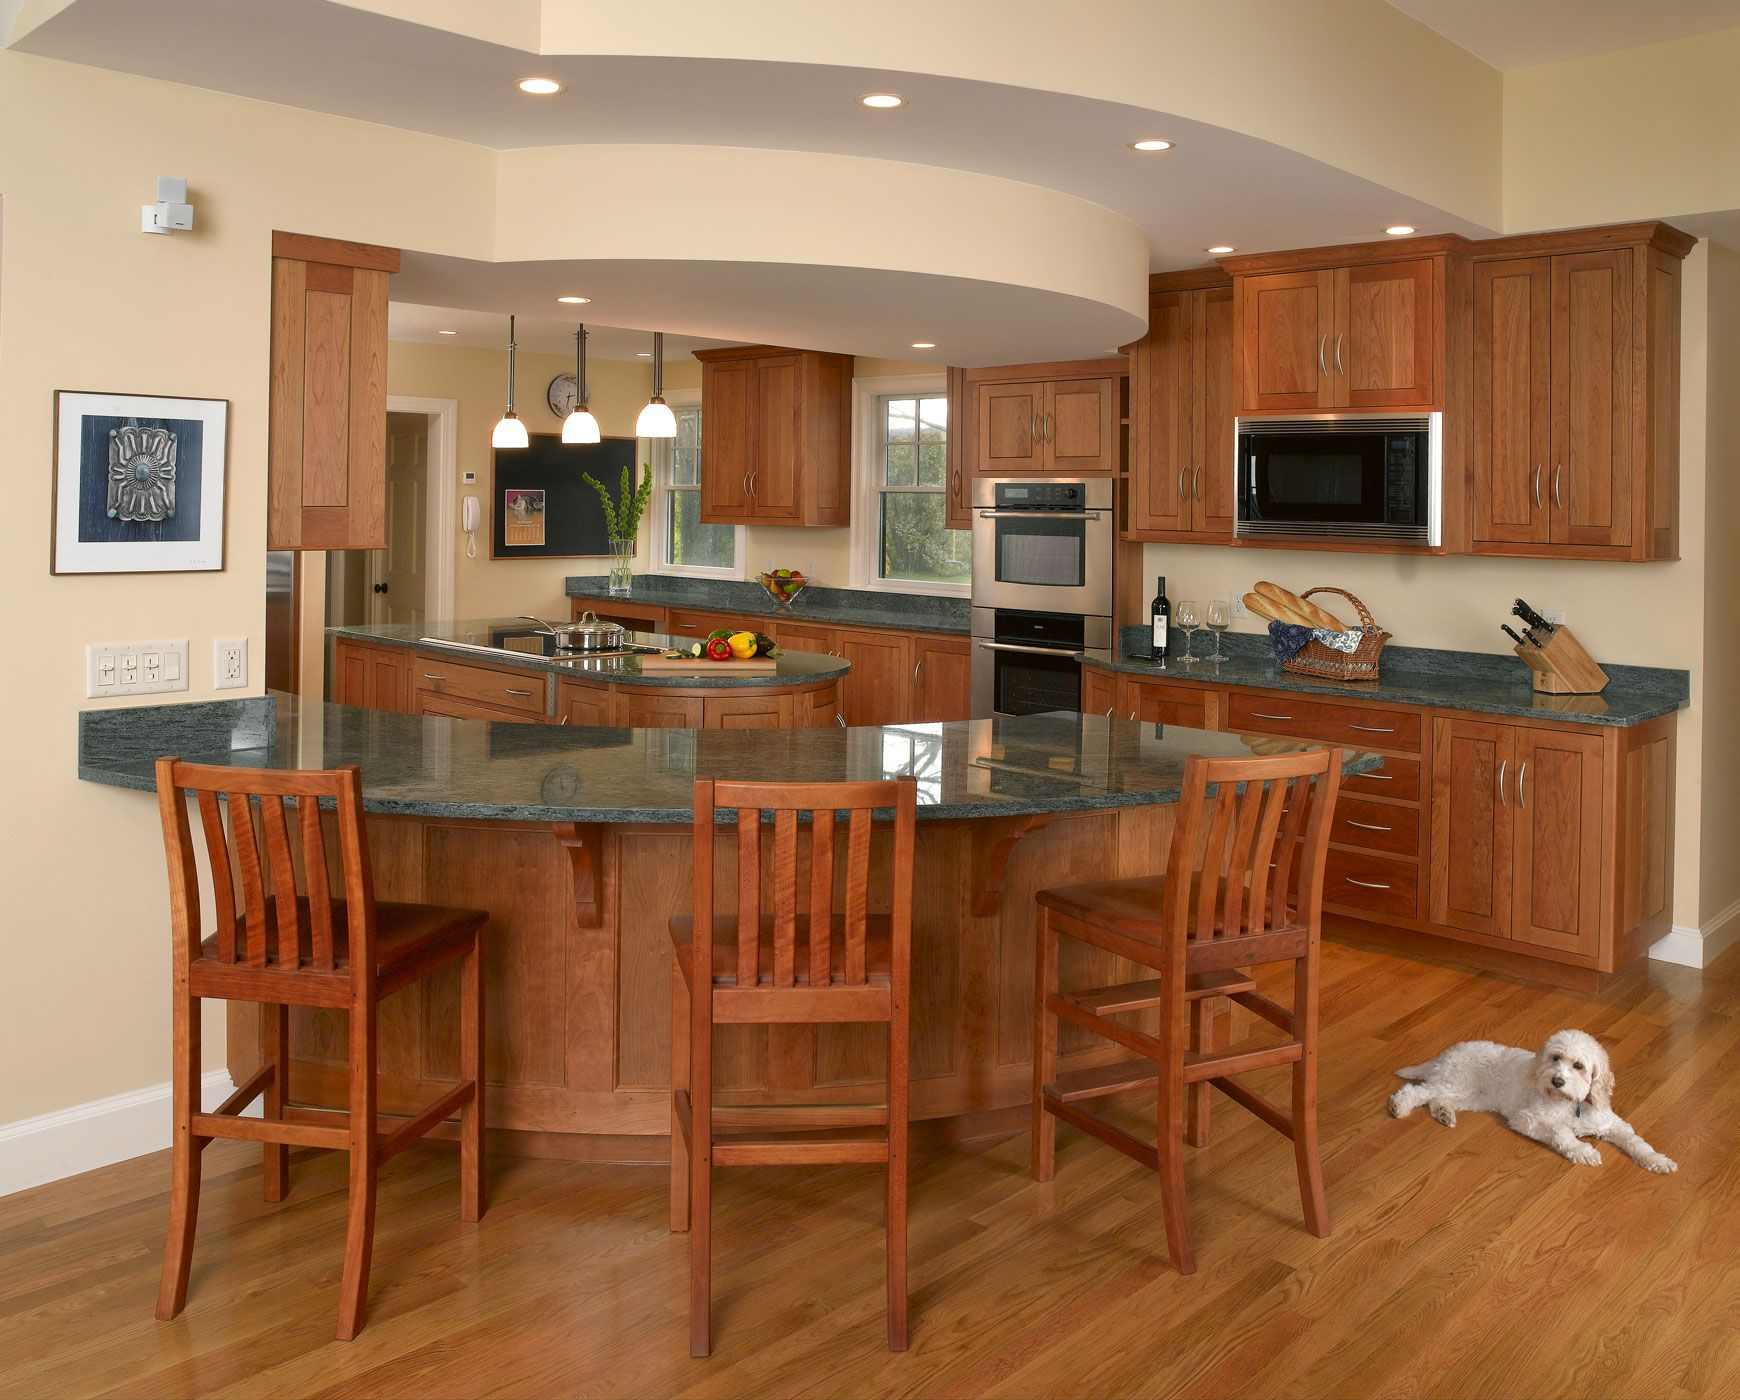 Kitchen Island With Seating Curved Kitchen Islands With Seating 150x150 Dovetail